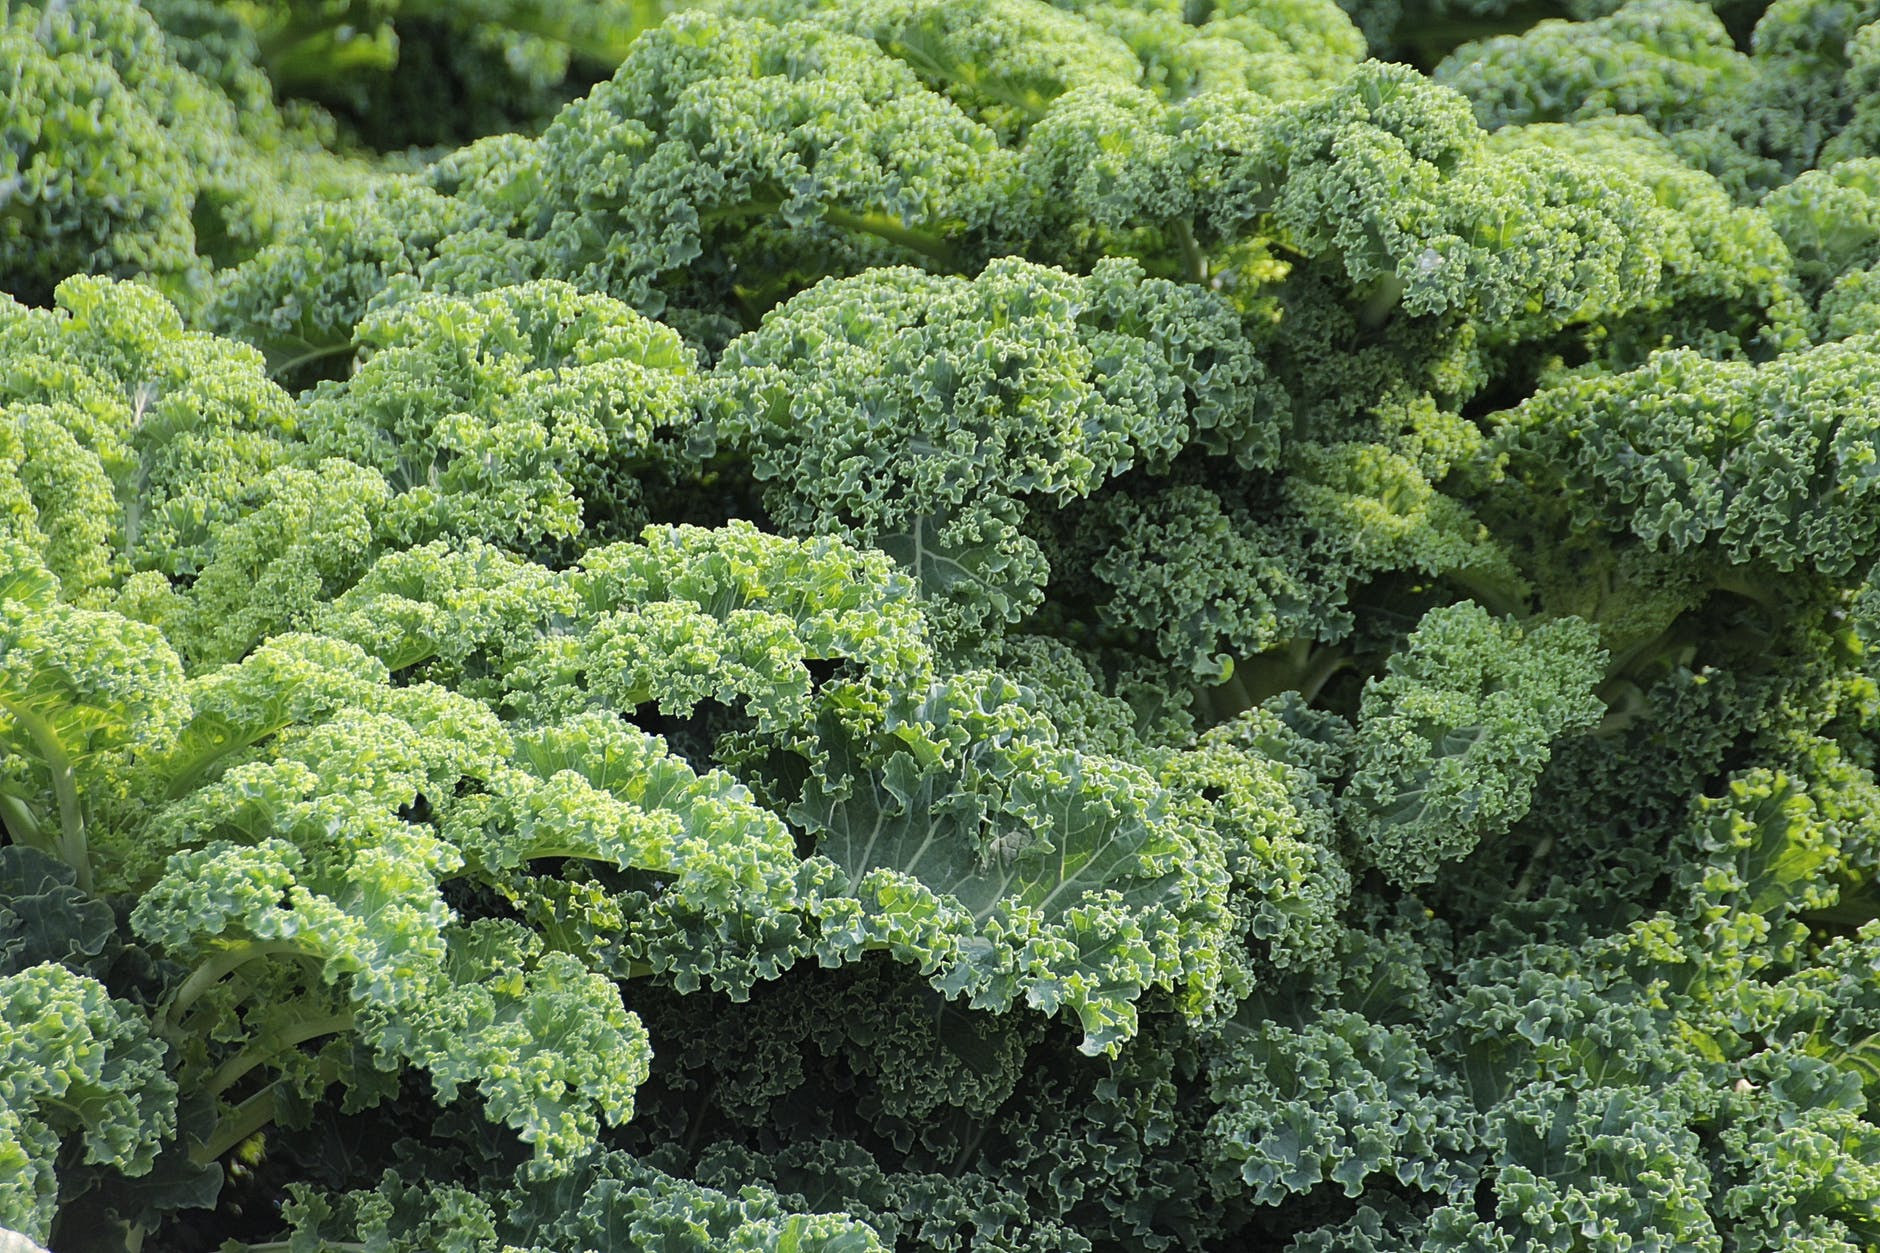 Kale is on the dirty dozen list. It's better to buy organic when it comes to Kale.